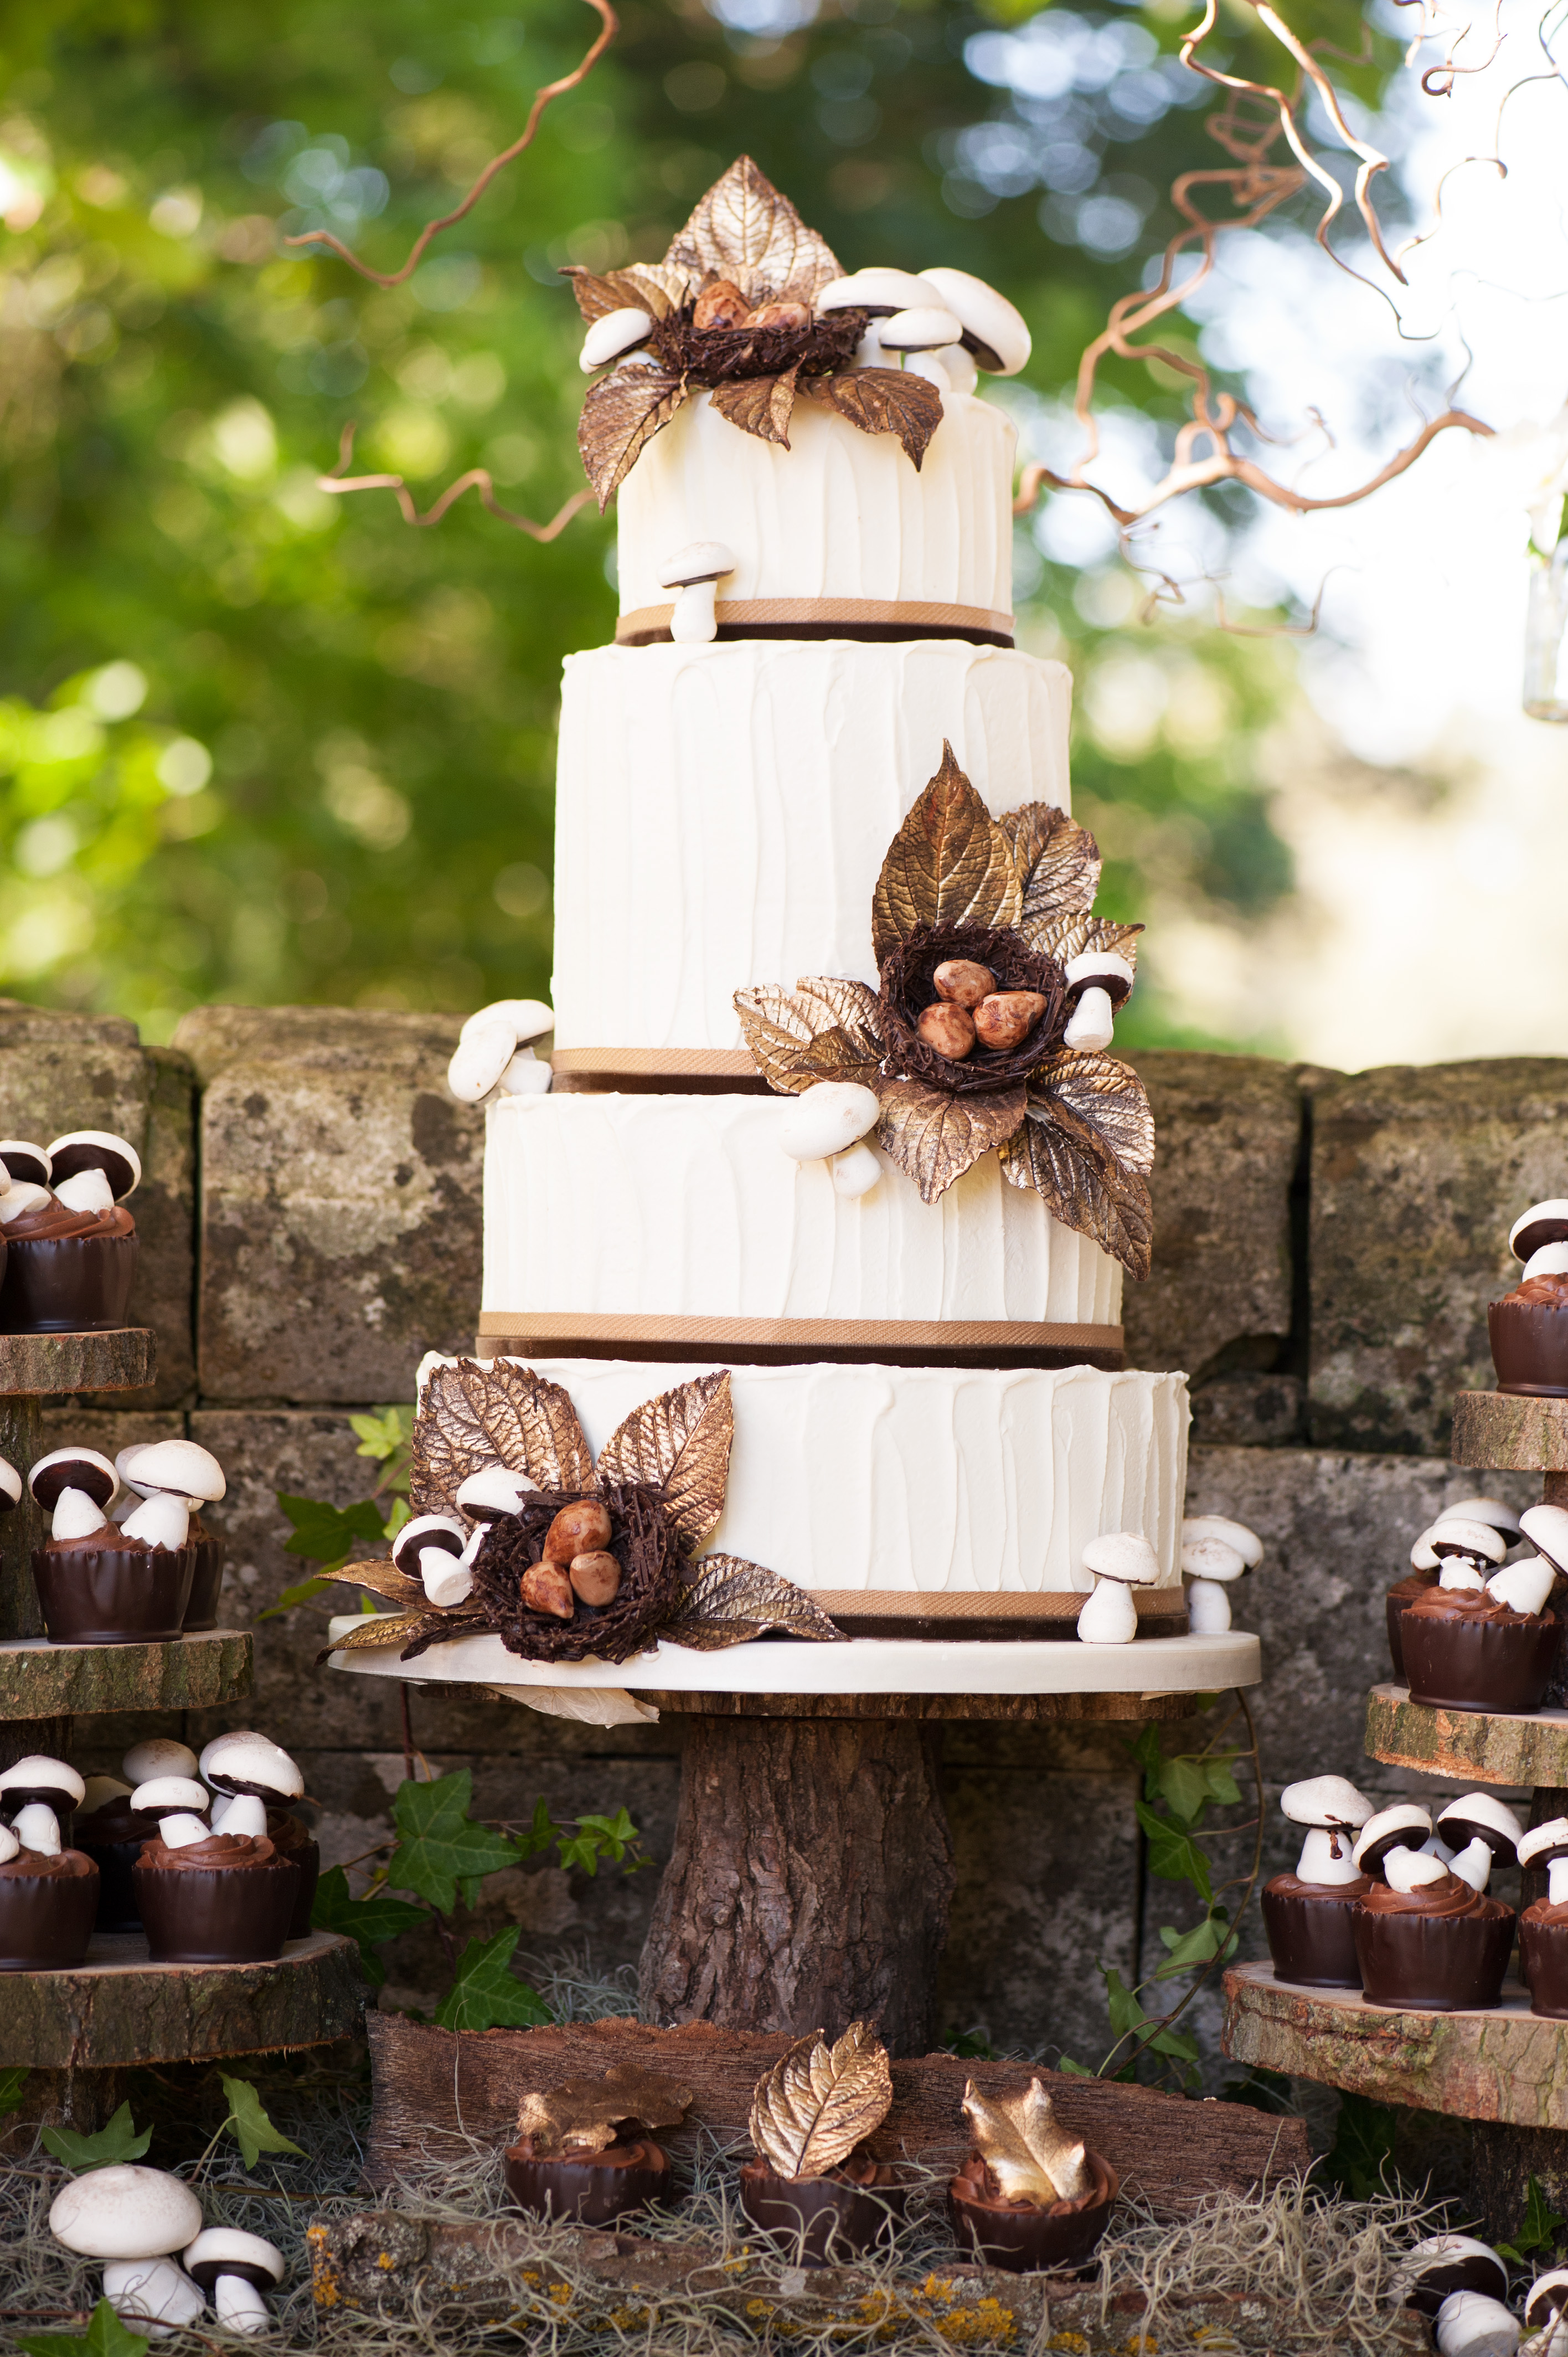 Remarkable Rustic Woodland Wedding Cake 2832 x 4256 · 1971 kB · jpeg